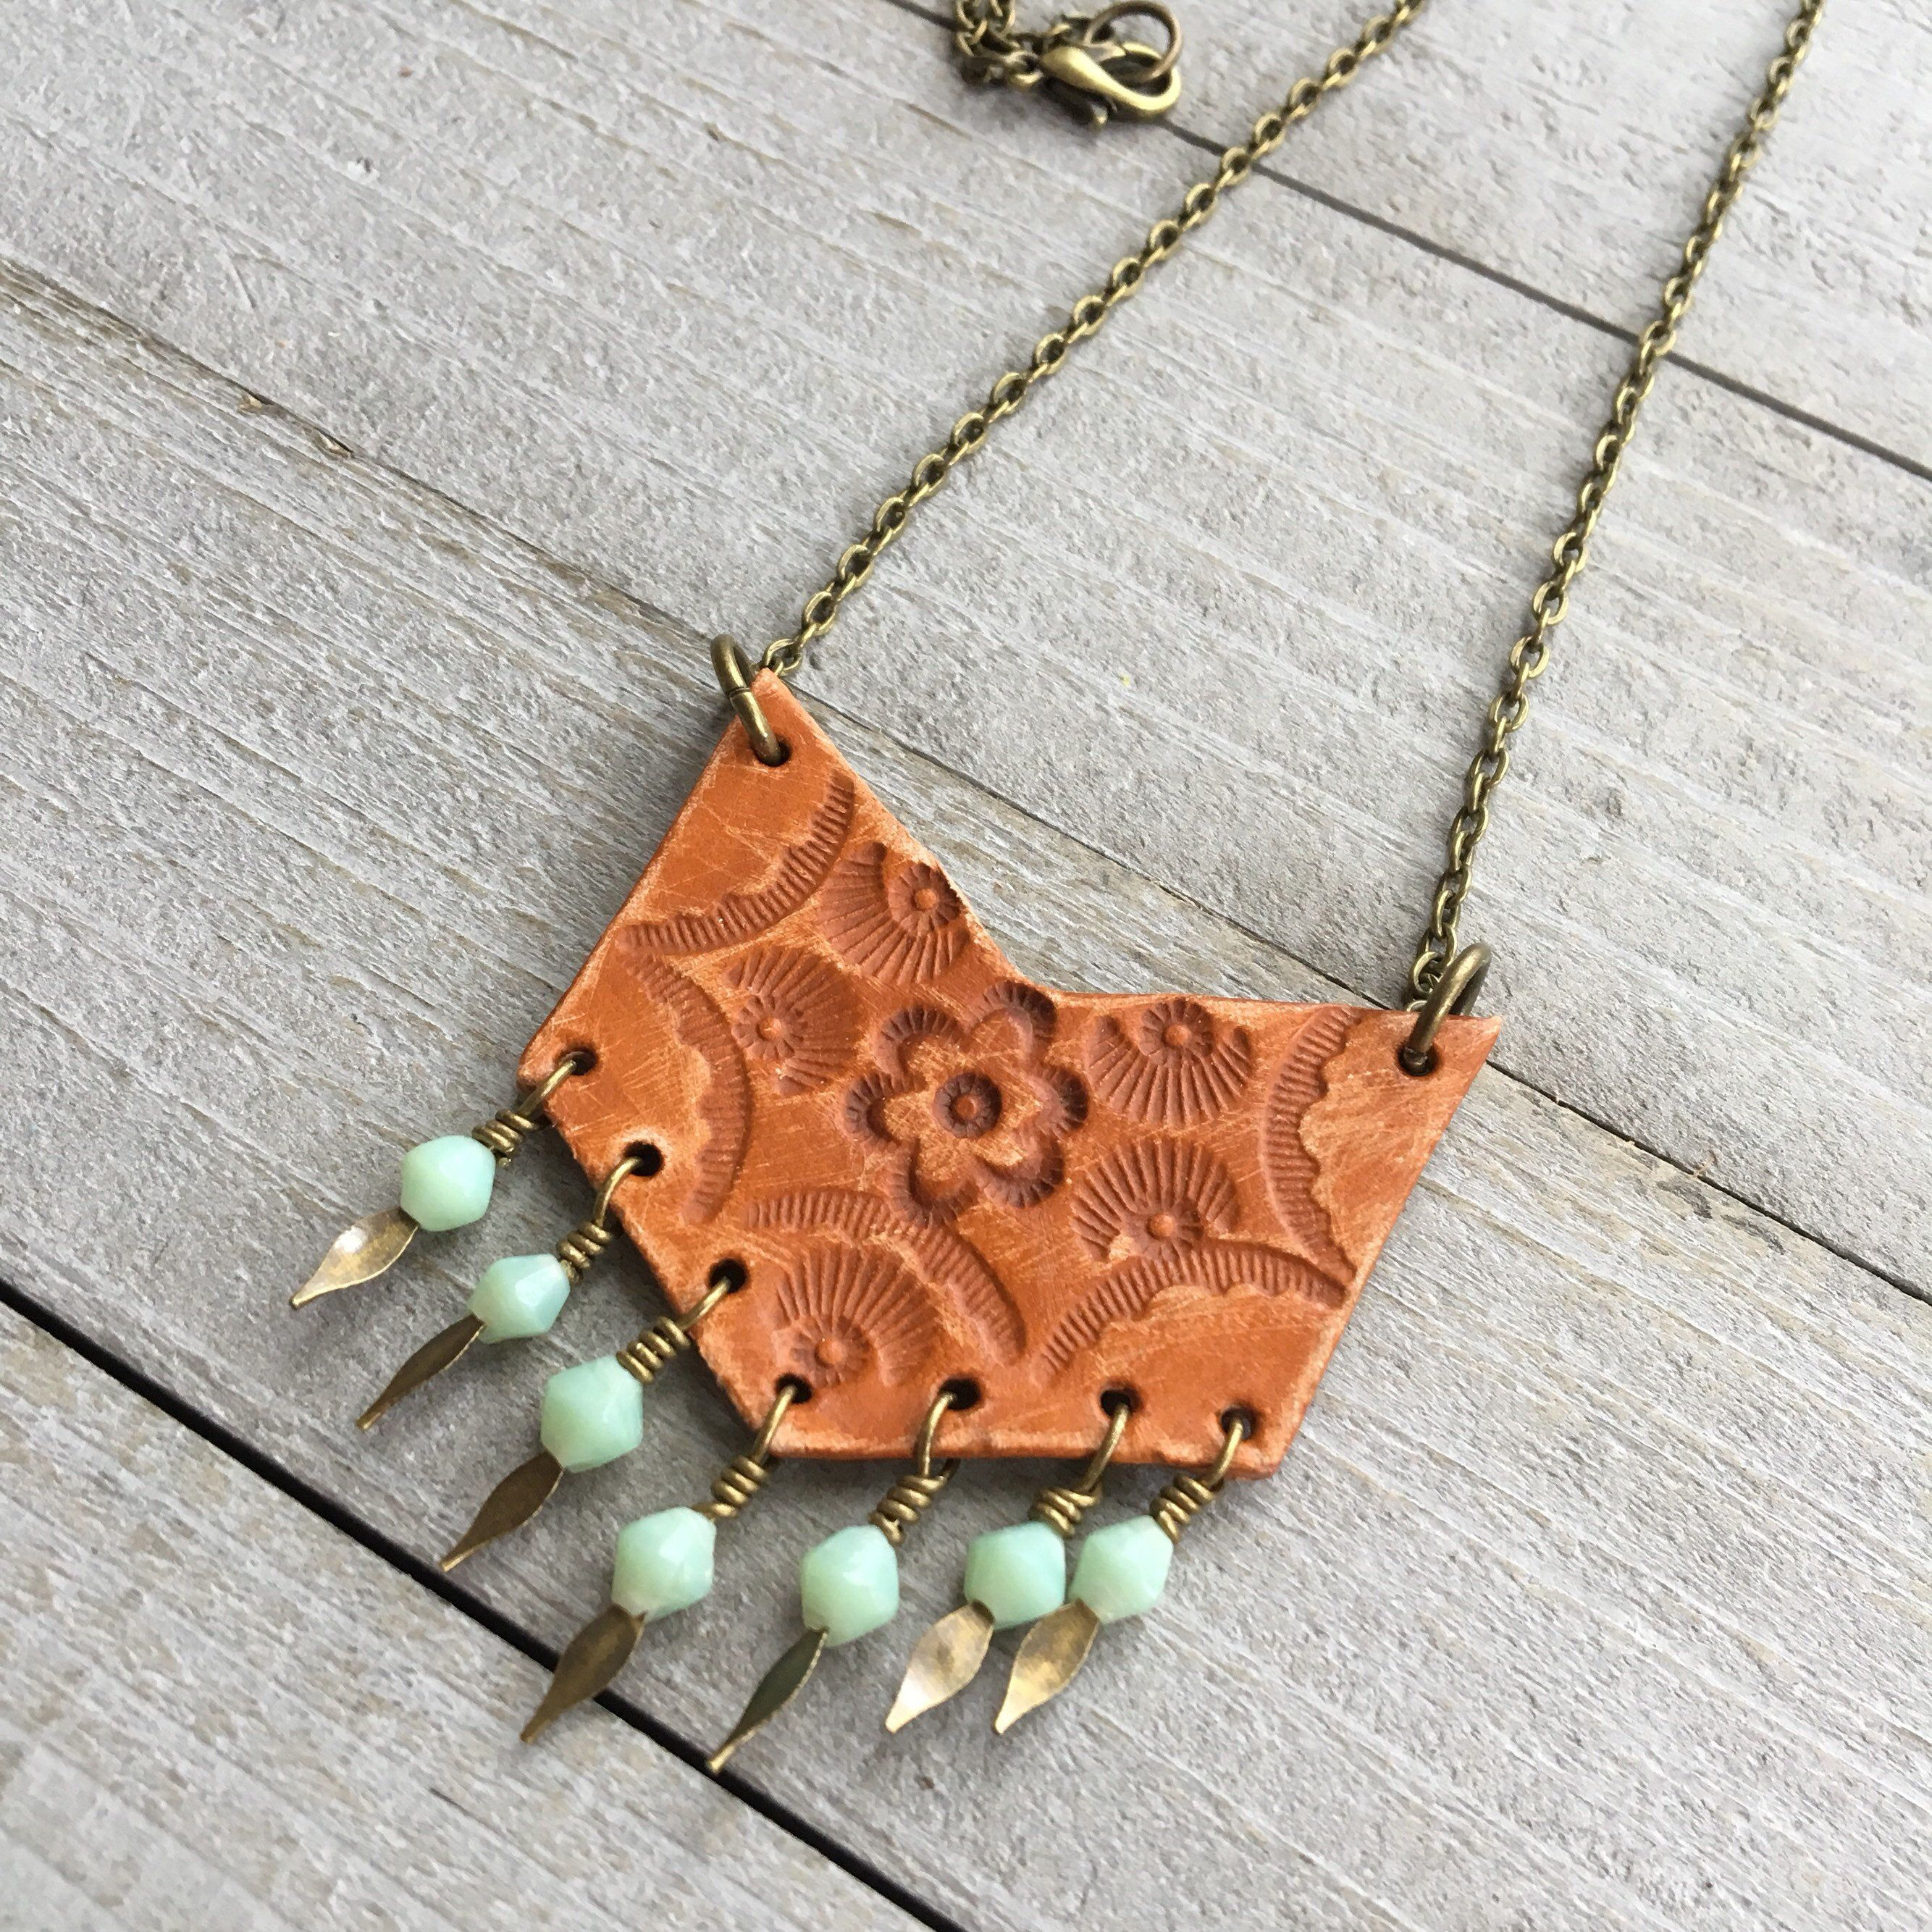 Photo of Boho Chevron Necklace – Tooled Leather on 16″ Chain with Vintage Glass Beads – Southwestern Inspired Bohemian Jewelry